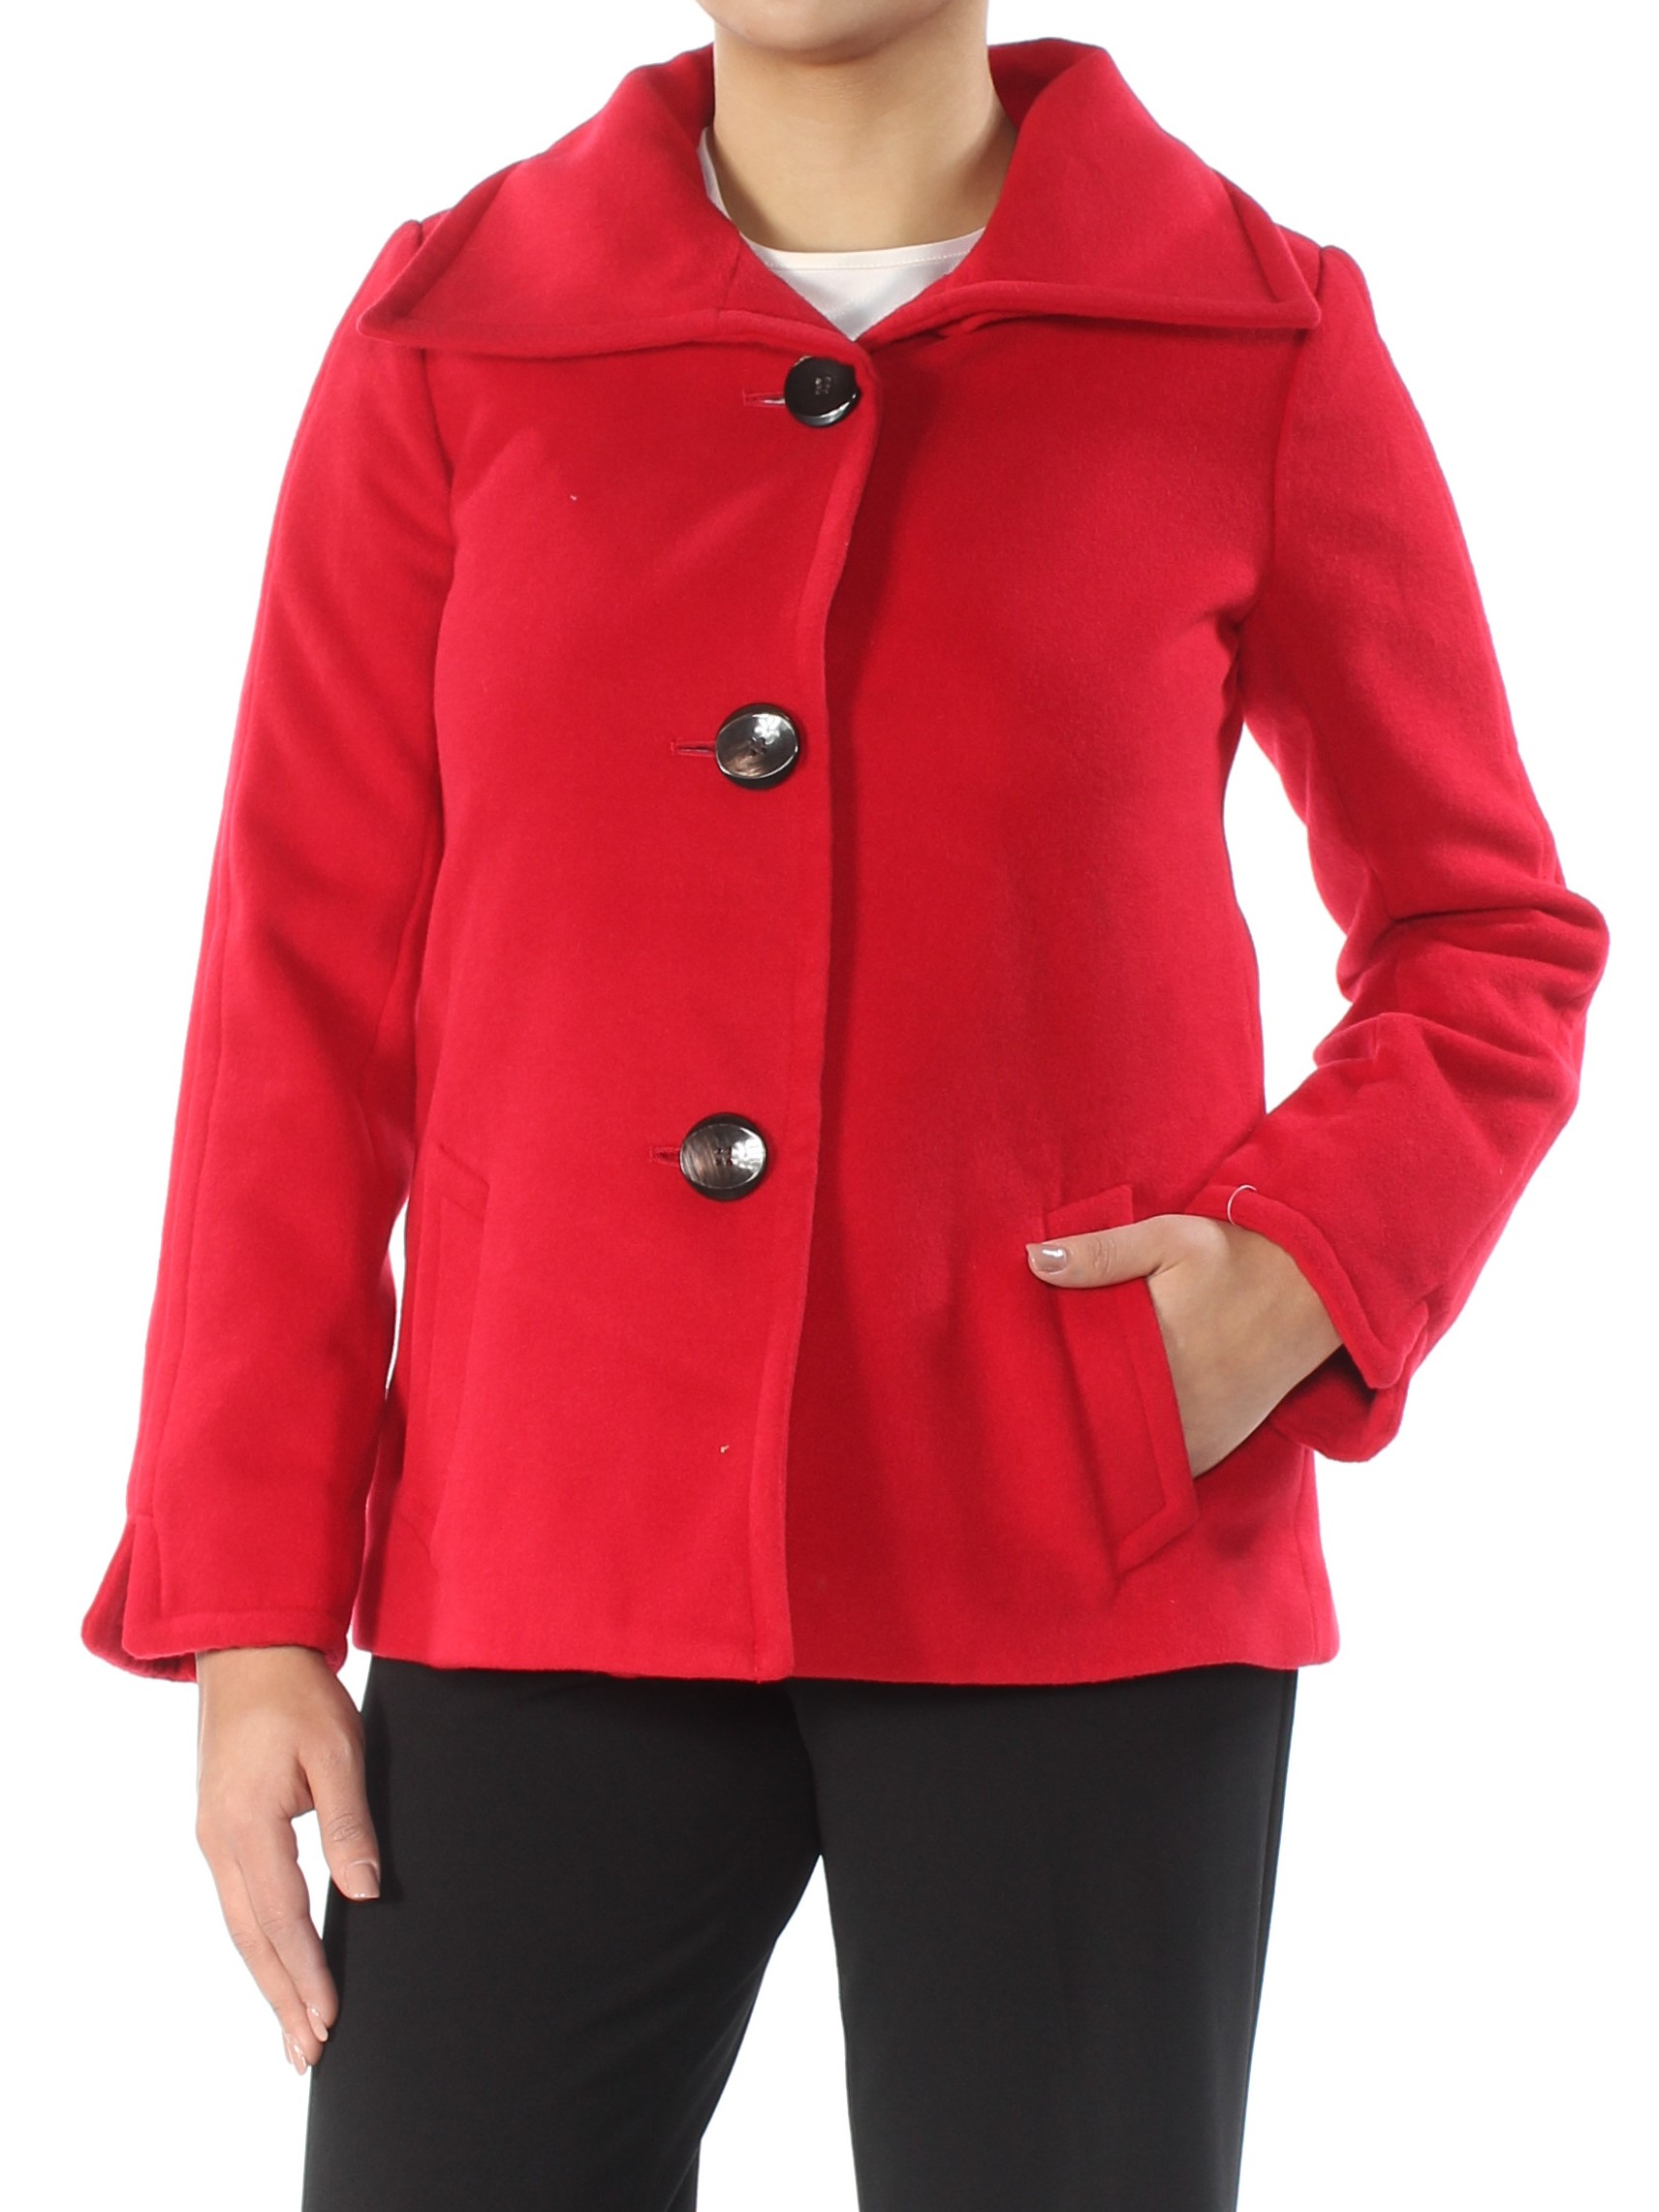 JM COLLECTION Womens Red Wing-collar Coat Petites  Size: 0